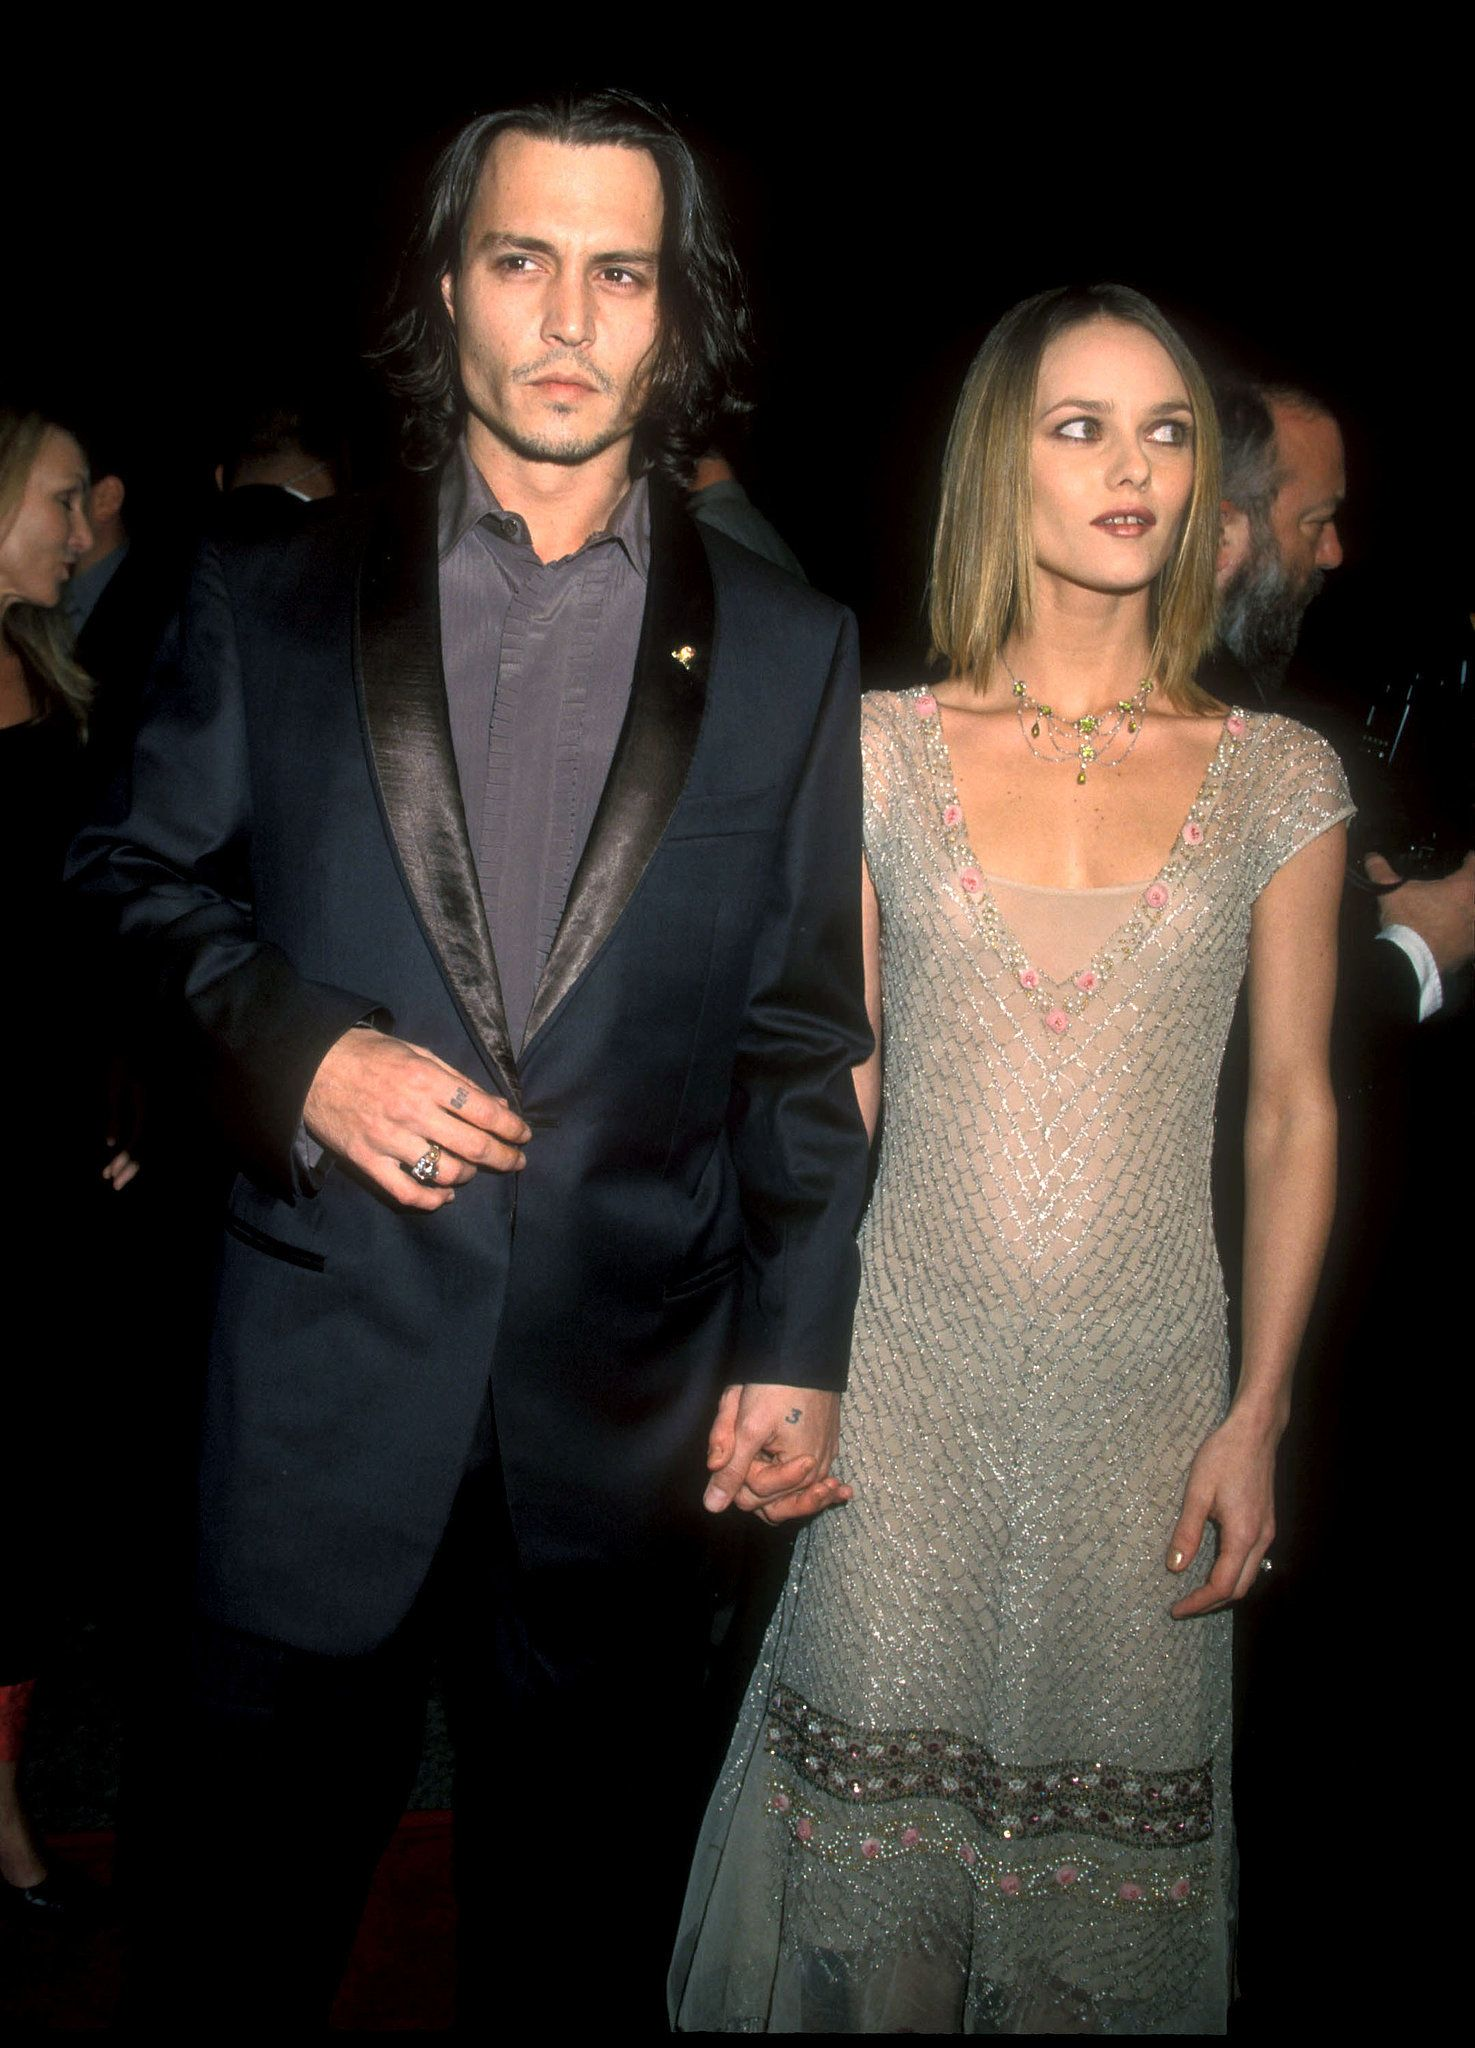 Johnny Depp Hochzeit The Evolution Of Your Johnny Depp Crush A Mix Of Jd Stuff